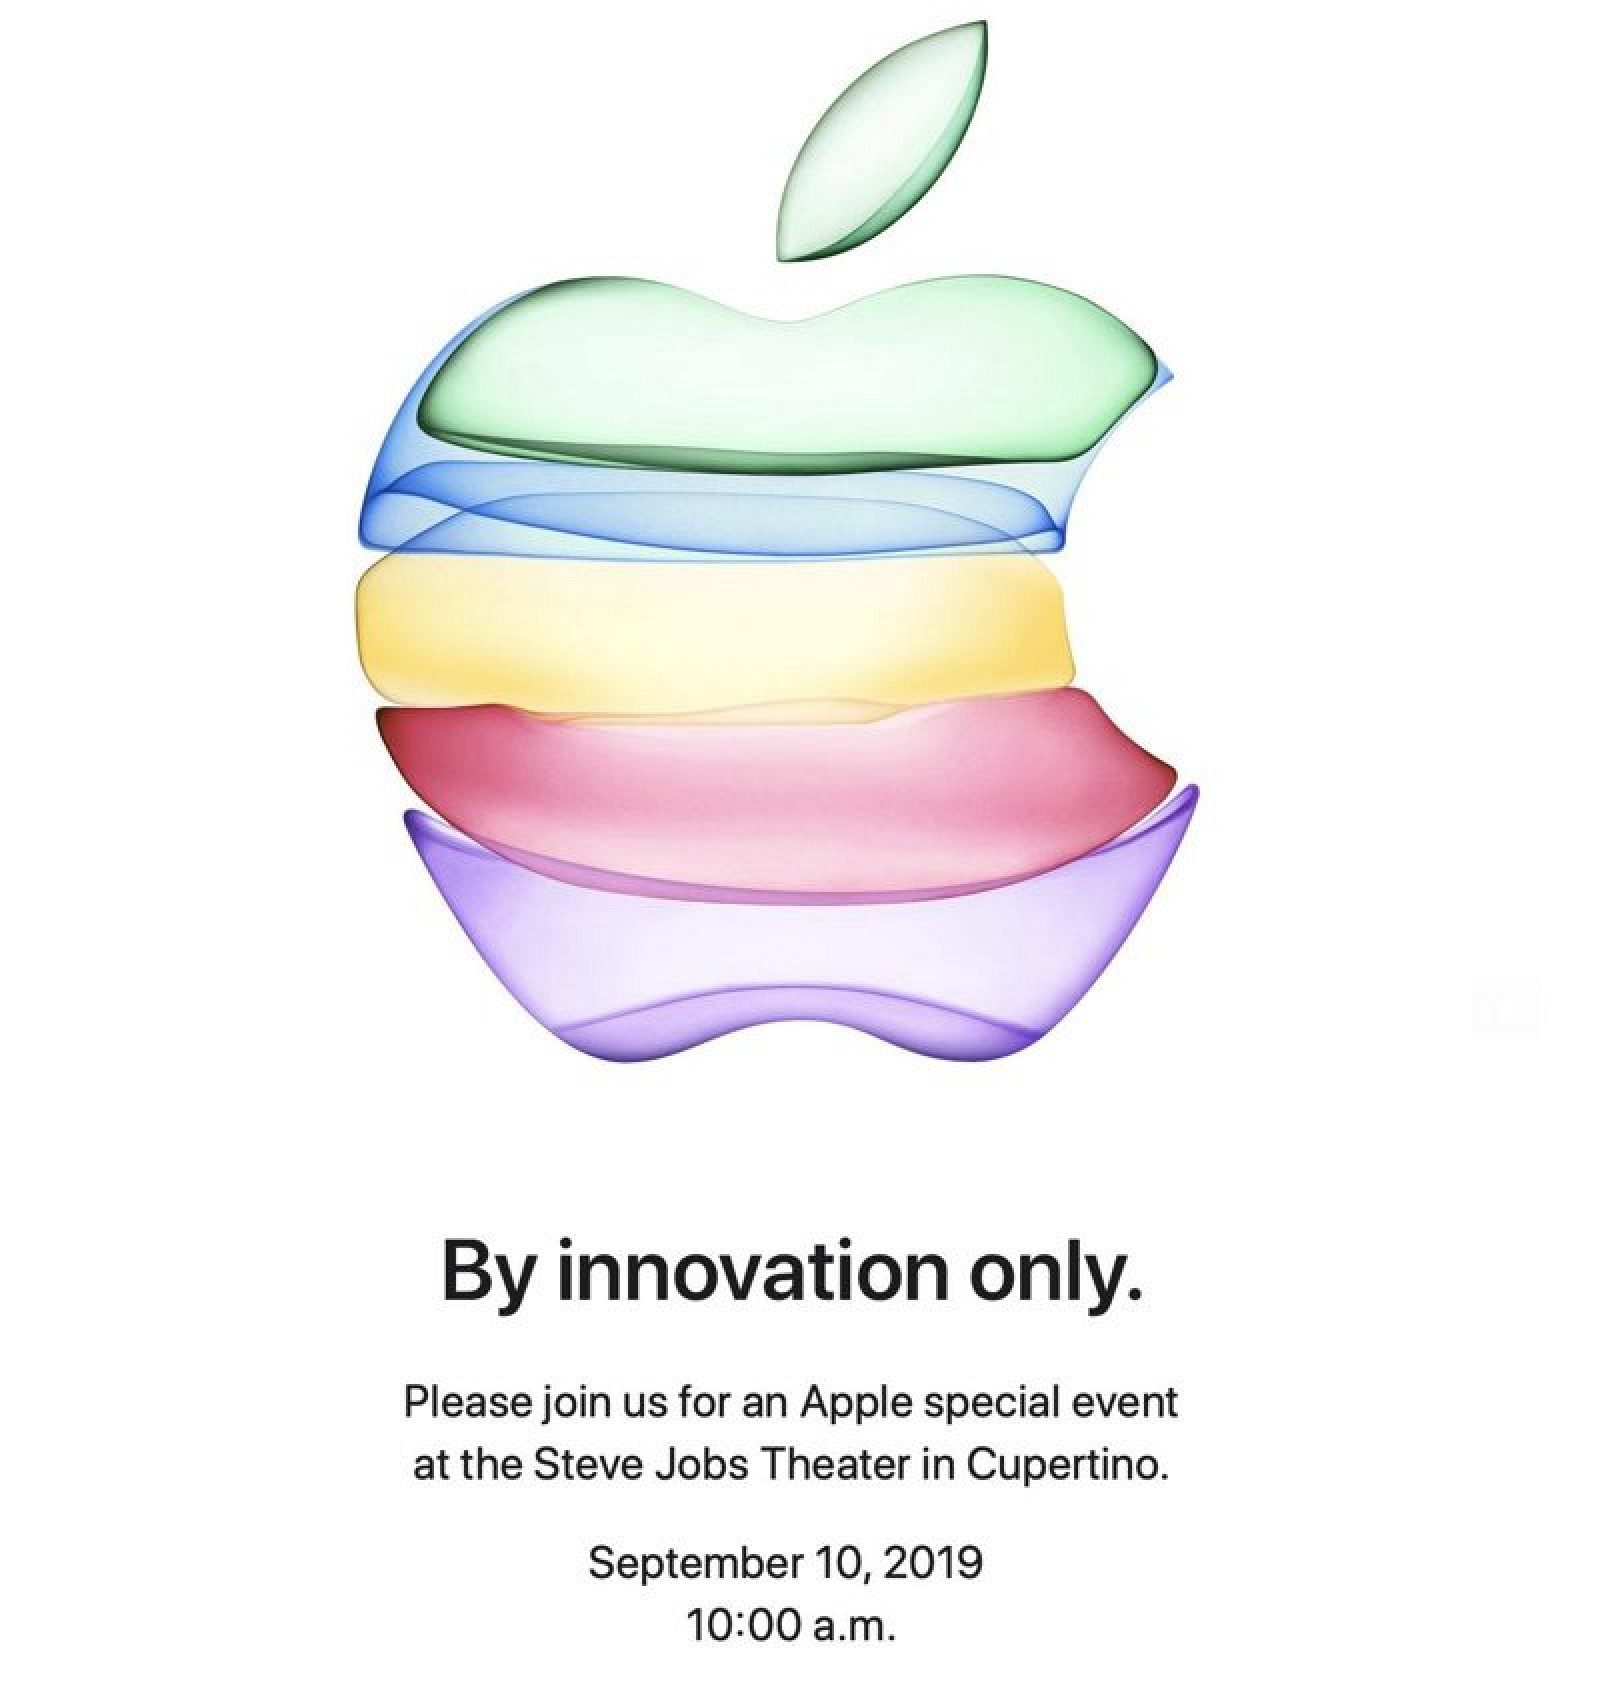 The flowing translucent Apple logo used on the press invitation for the September 10, 2019 event.